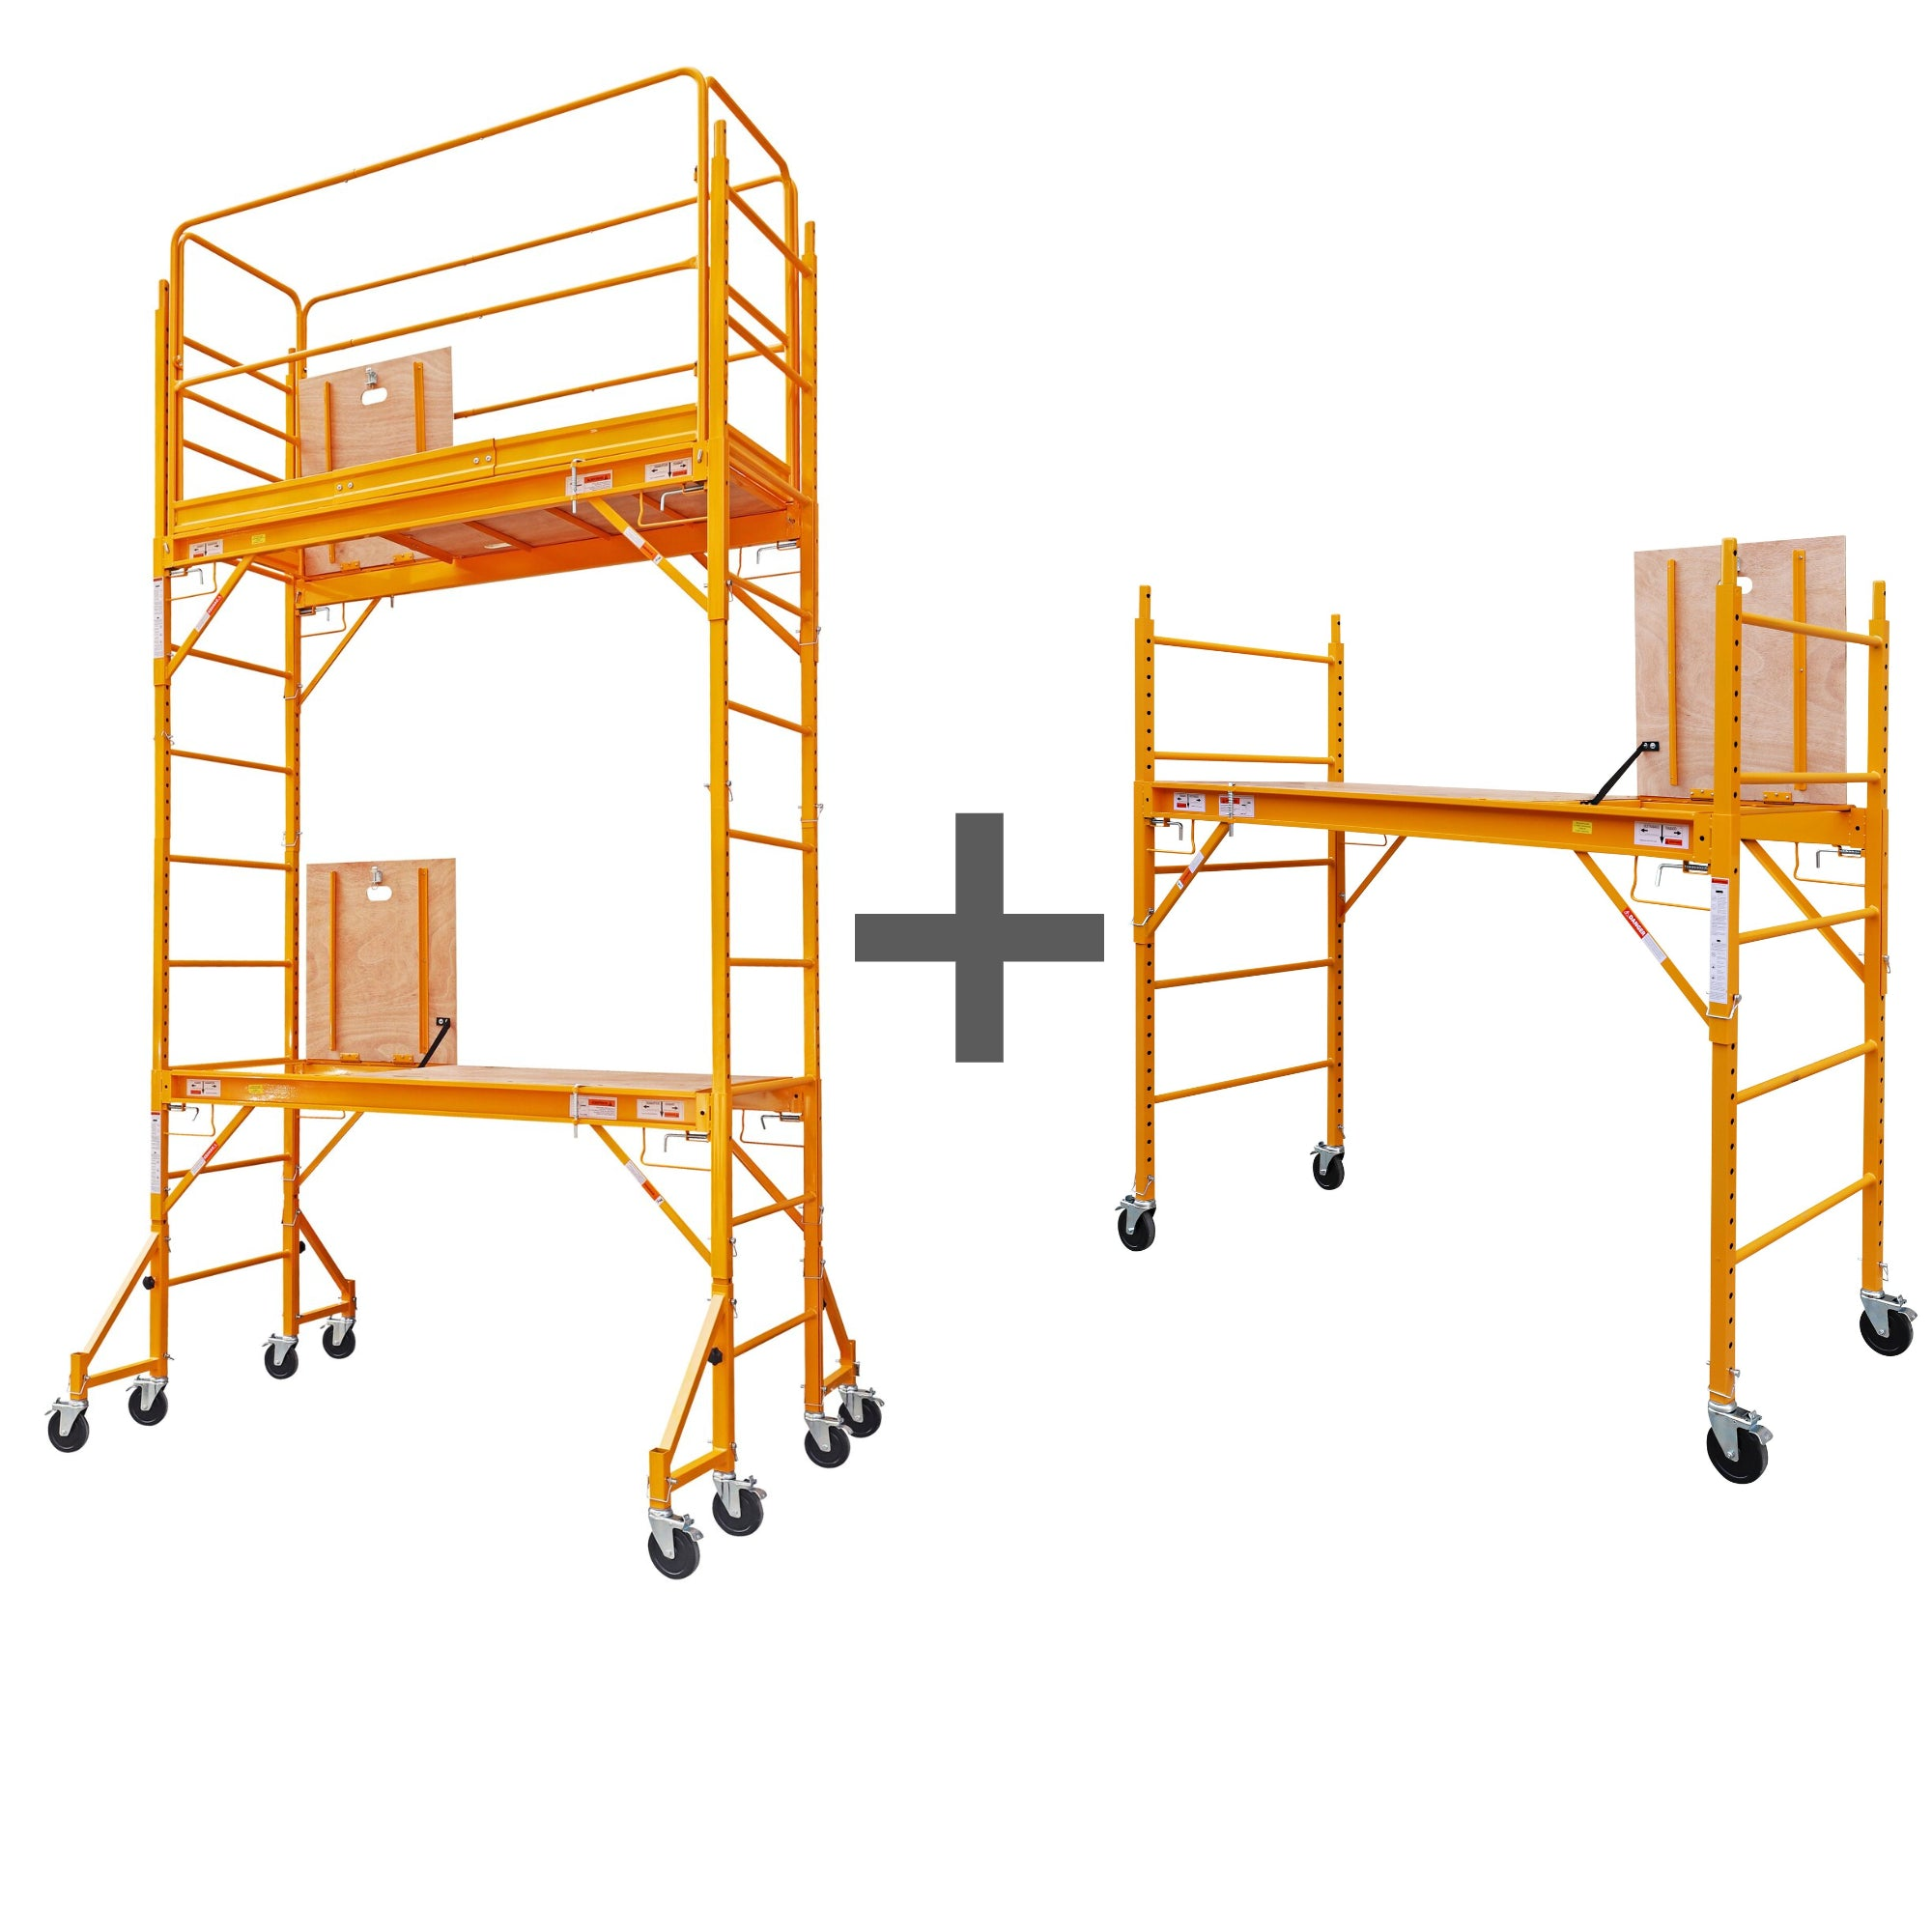 12 foot Hatch Platform Scaffold with safety rails and outiggers + 1 6 Foot Scaffold